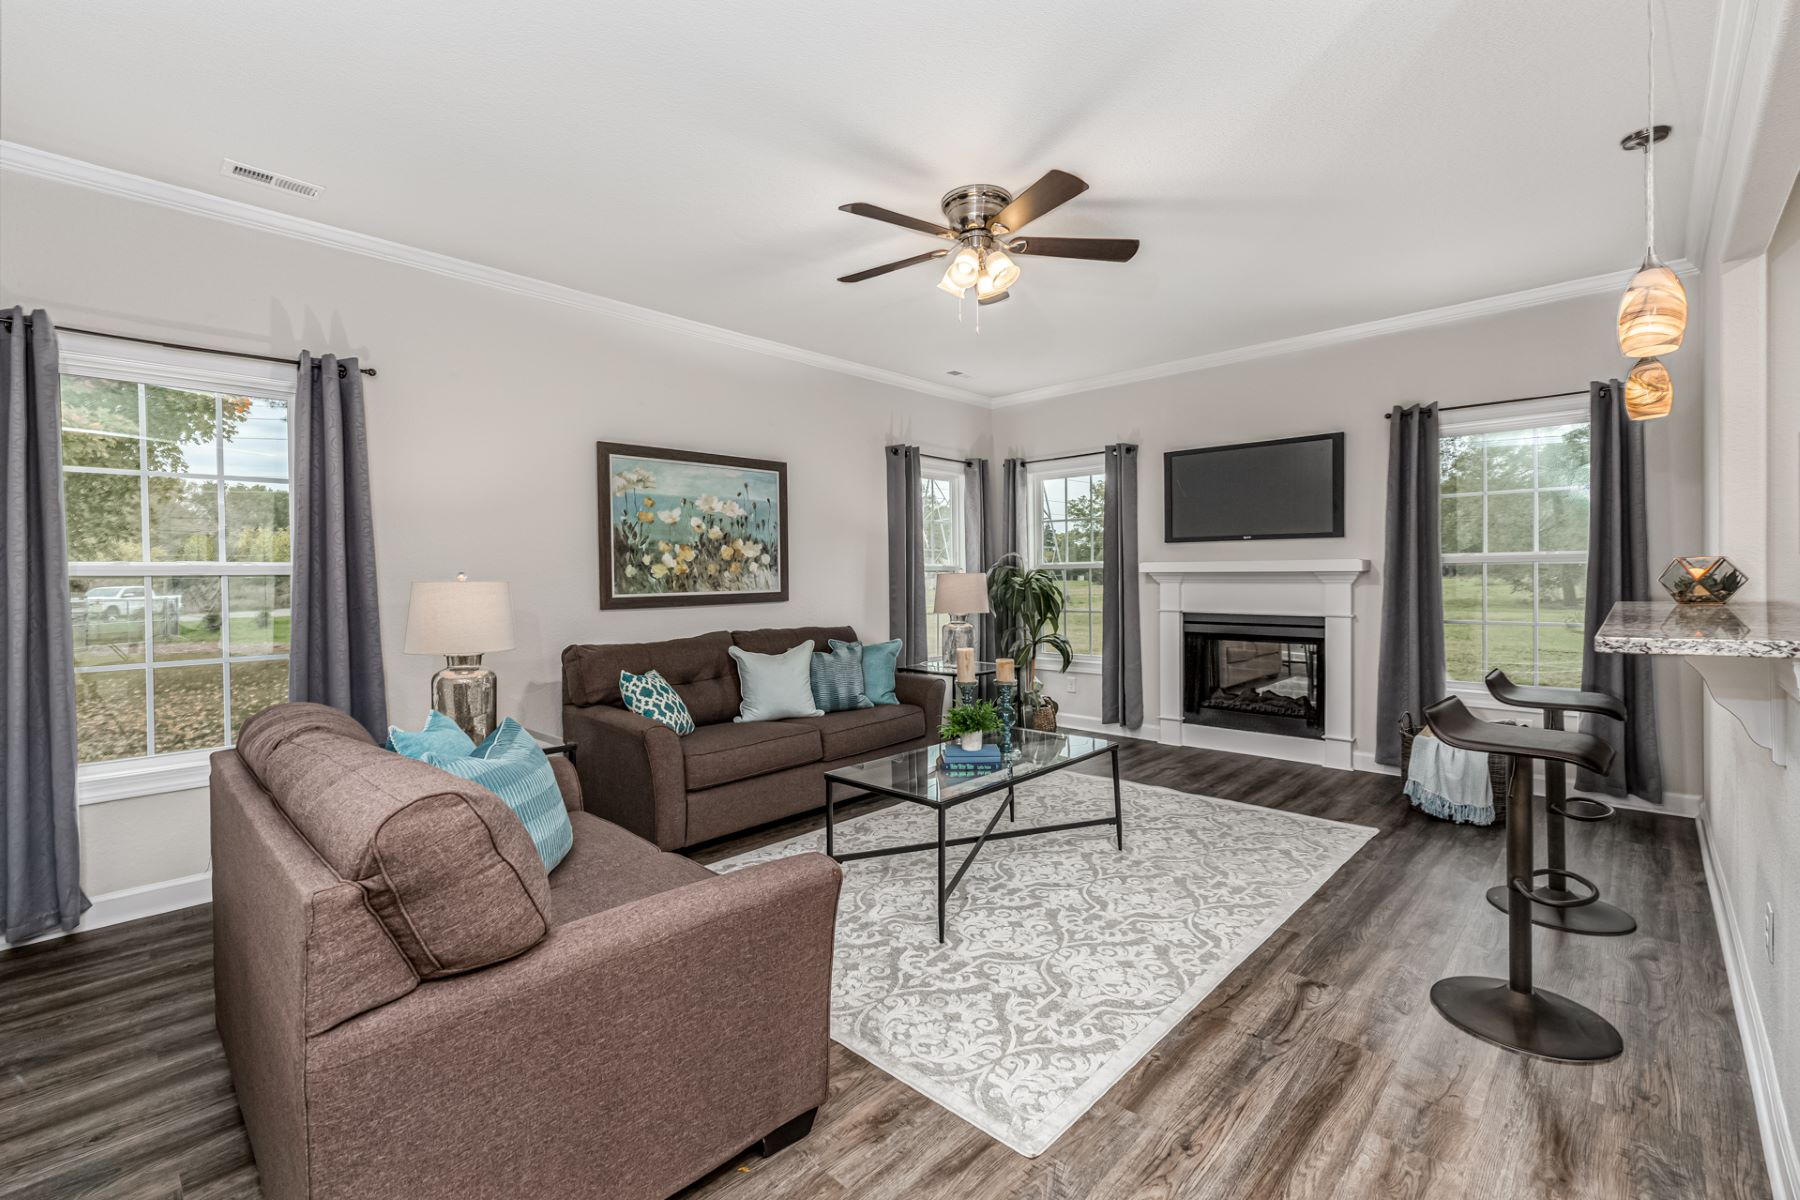 Single Family Homes for Active at PUGHSVILLE 4524 Marlin Ave Suffolk, Virginia 23435 United States